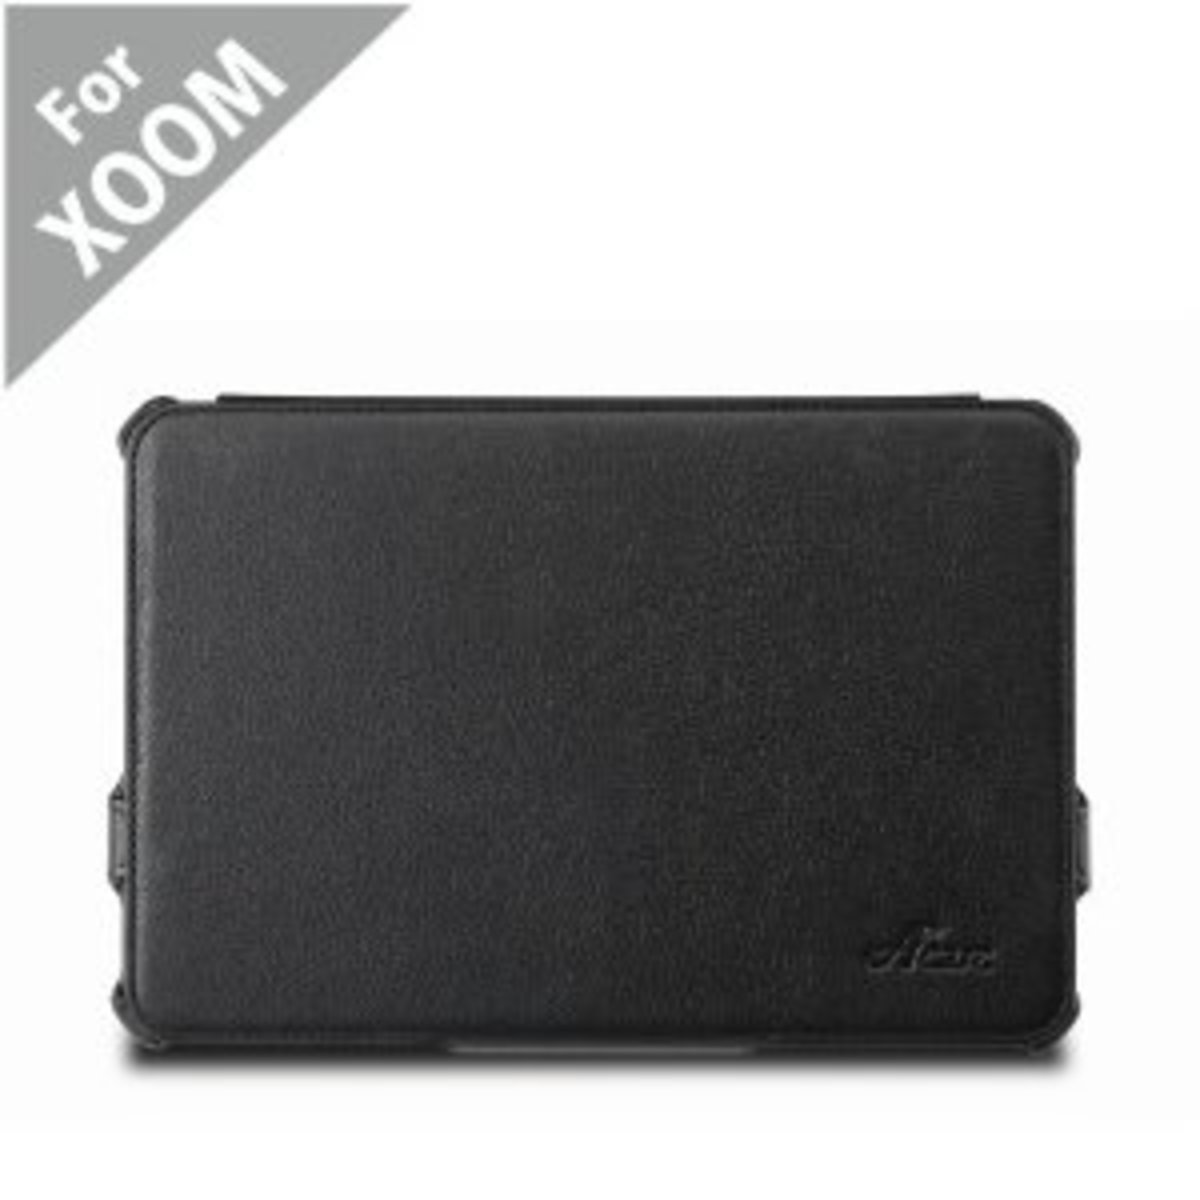 Leather case for Xoom